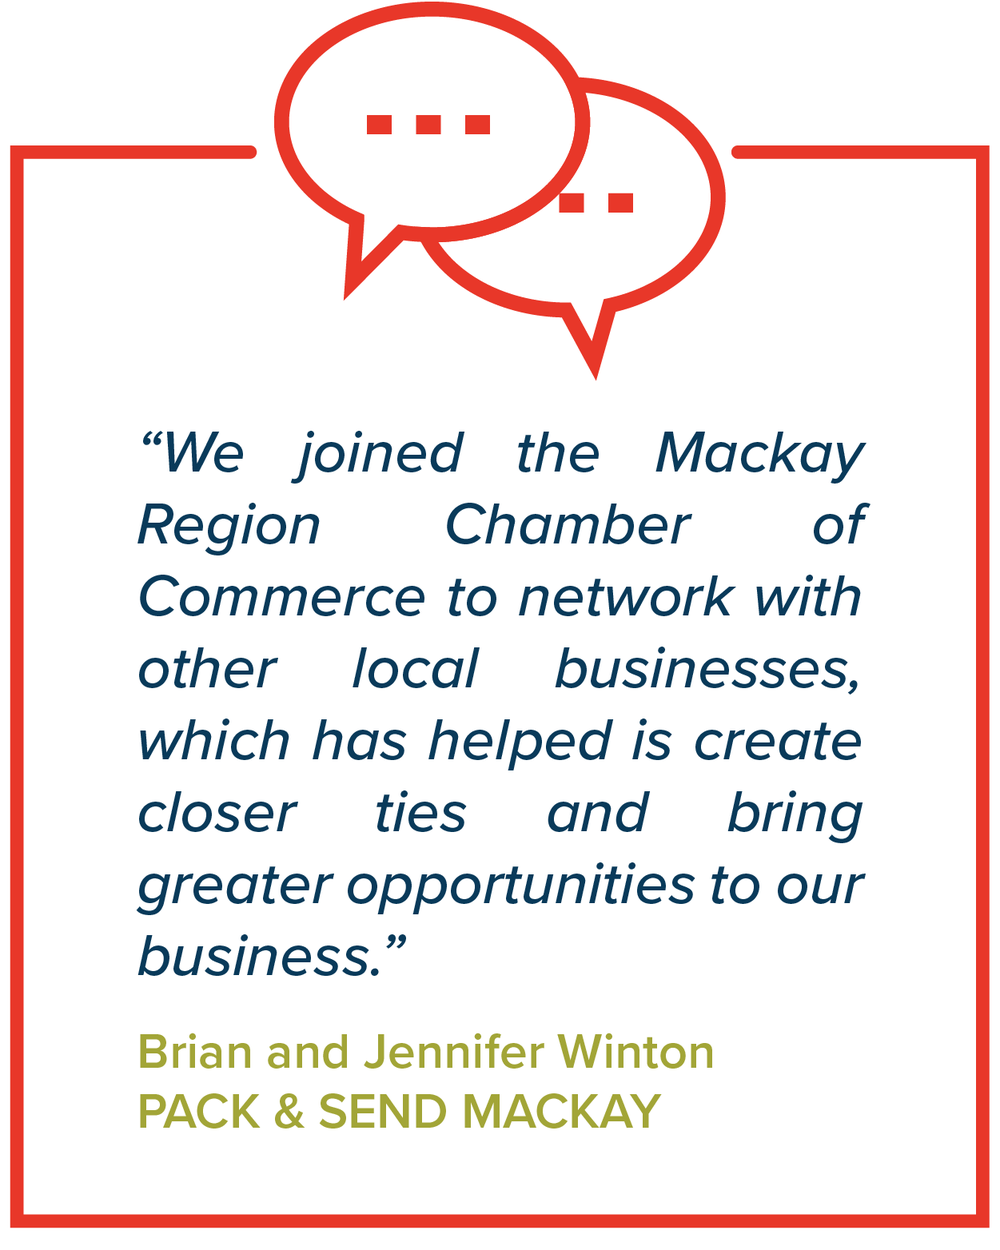 """We joined the Mackay Region Chamber of Commerce to network with other local businesses, which has helped is create closer ties and bring greater opportunities to our business.""   Brian & Jennifer Winton, Pack & Send Mackay"